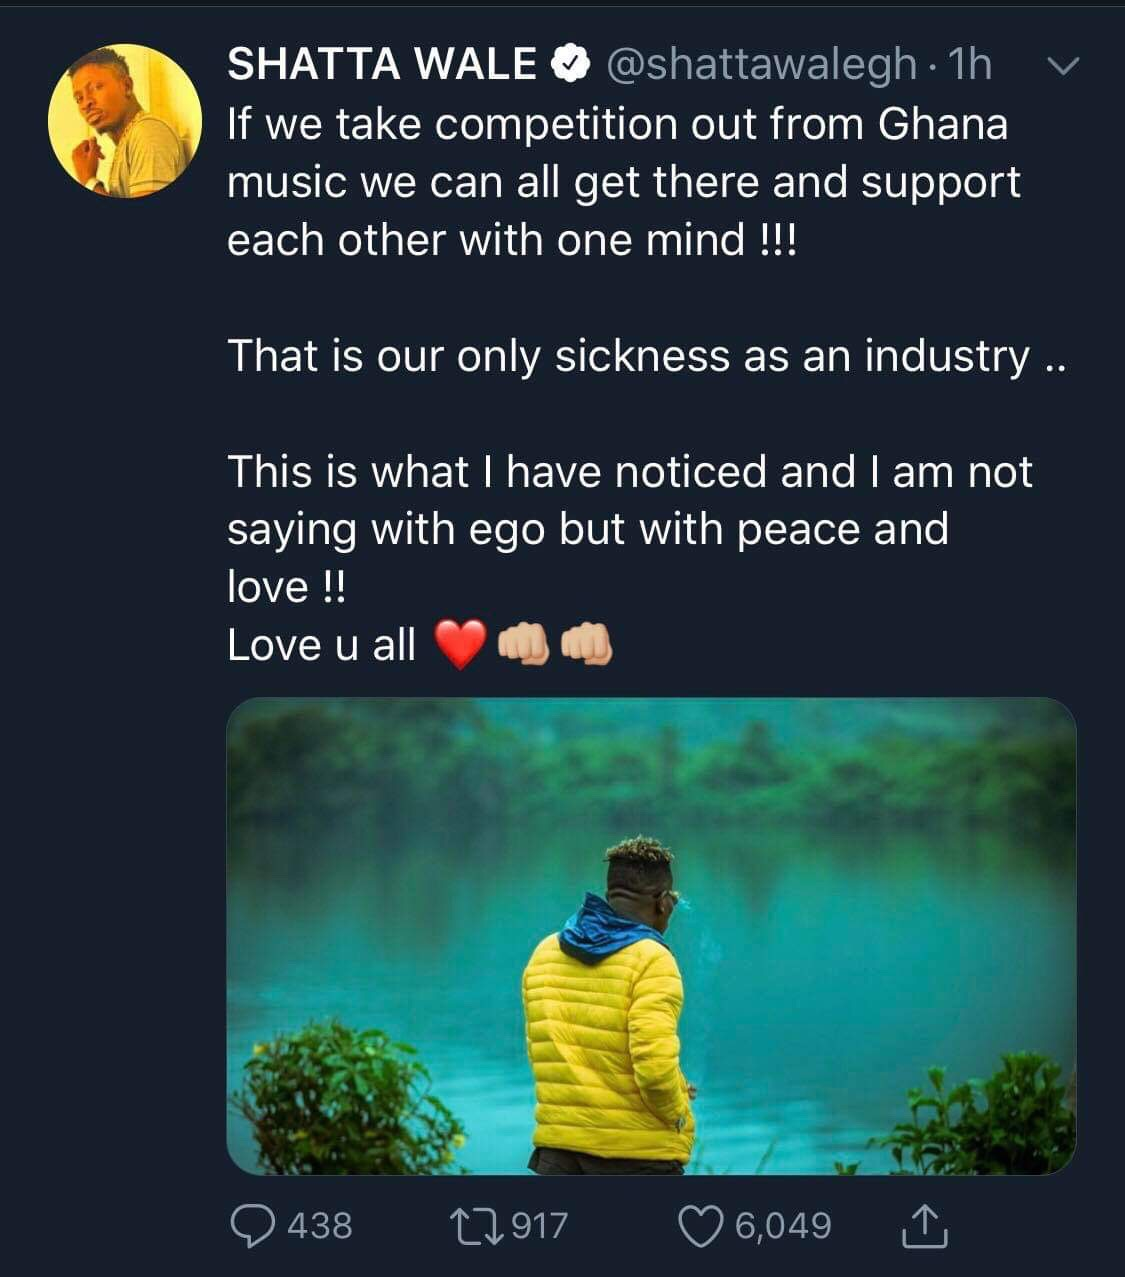 Shatta Wale's post - Competition is the disease in Ghana's music industry- Shatta Wale